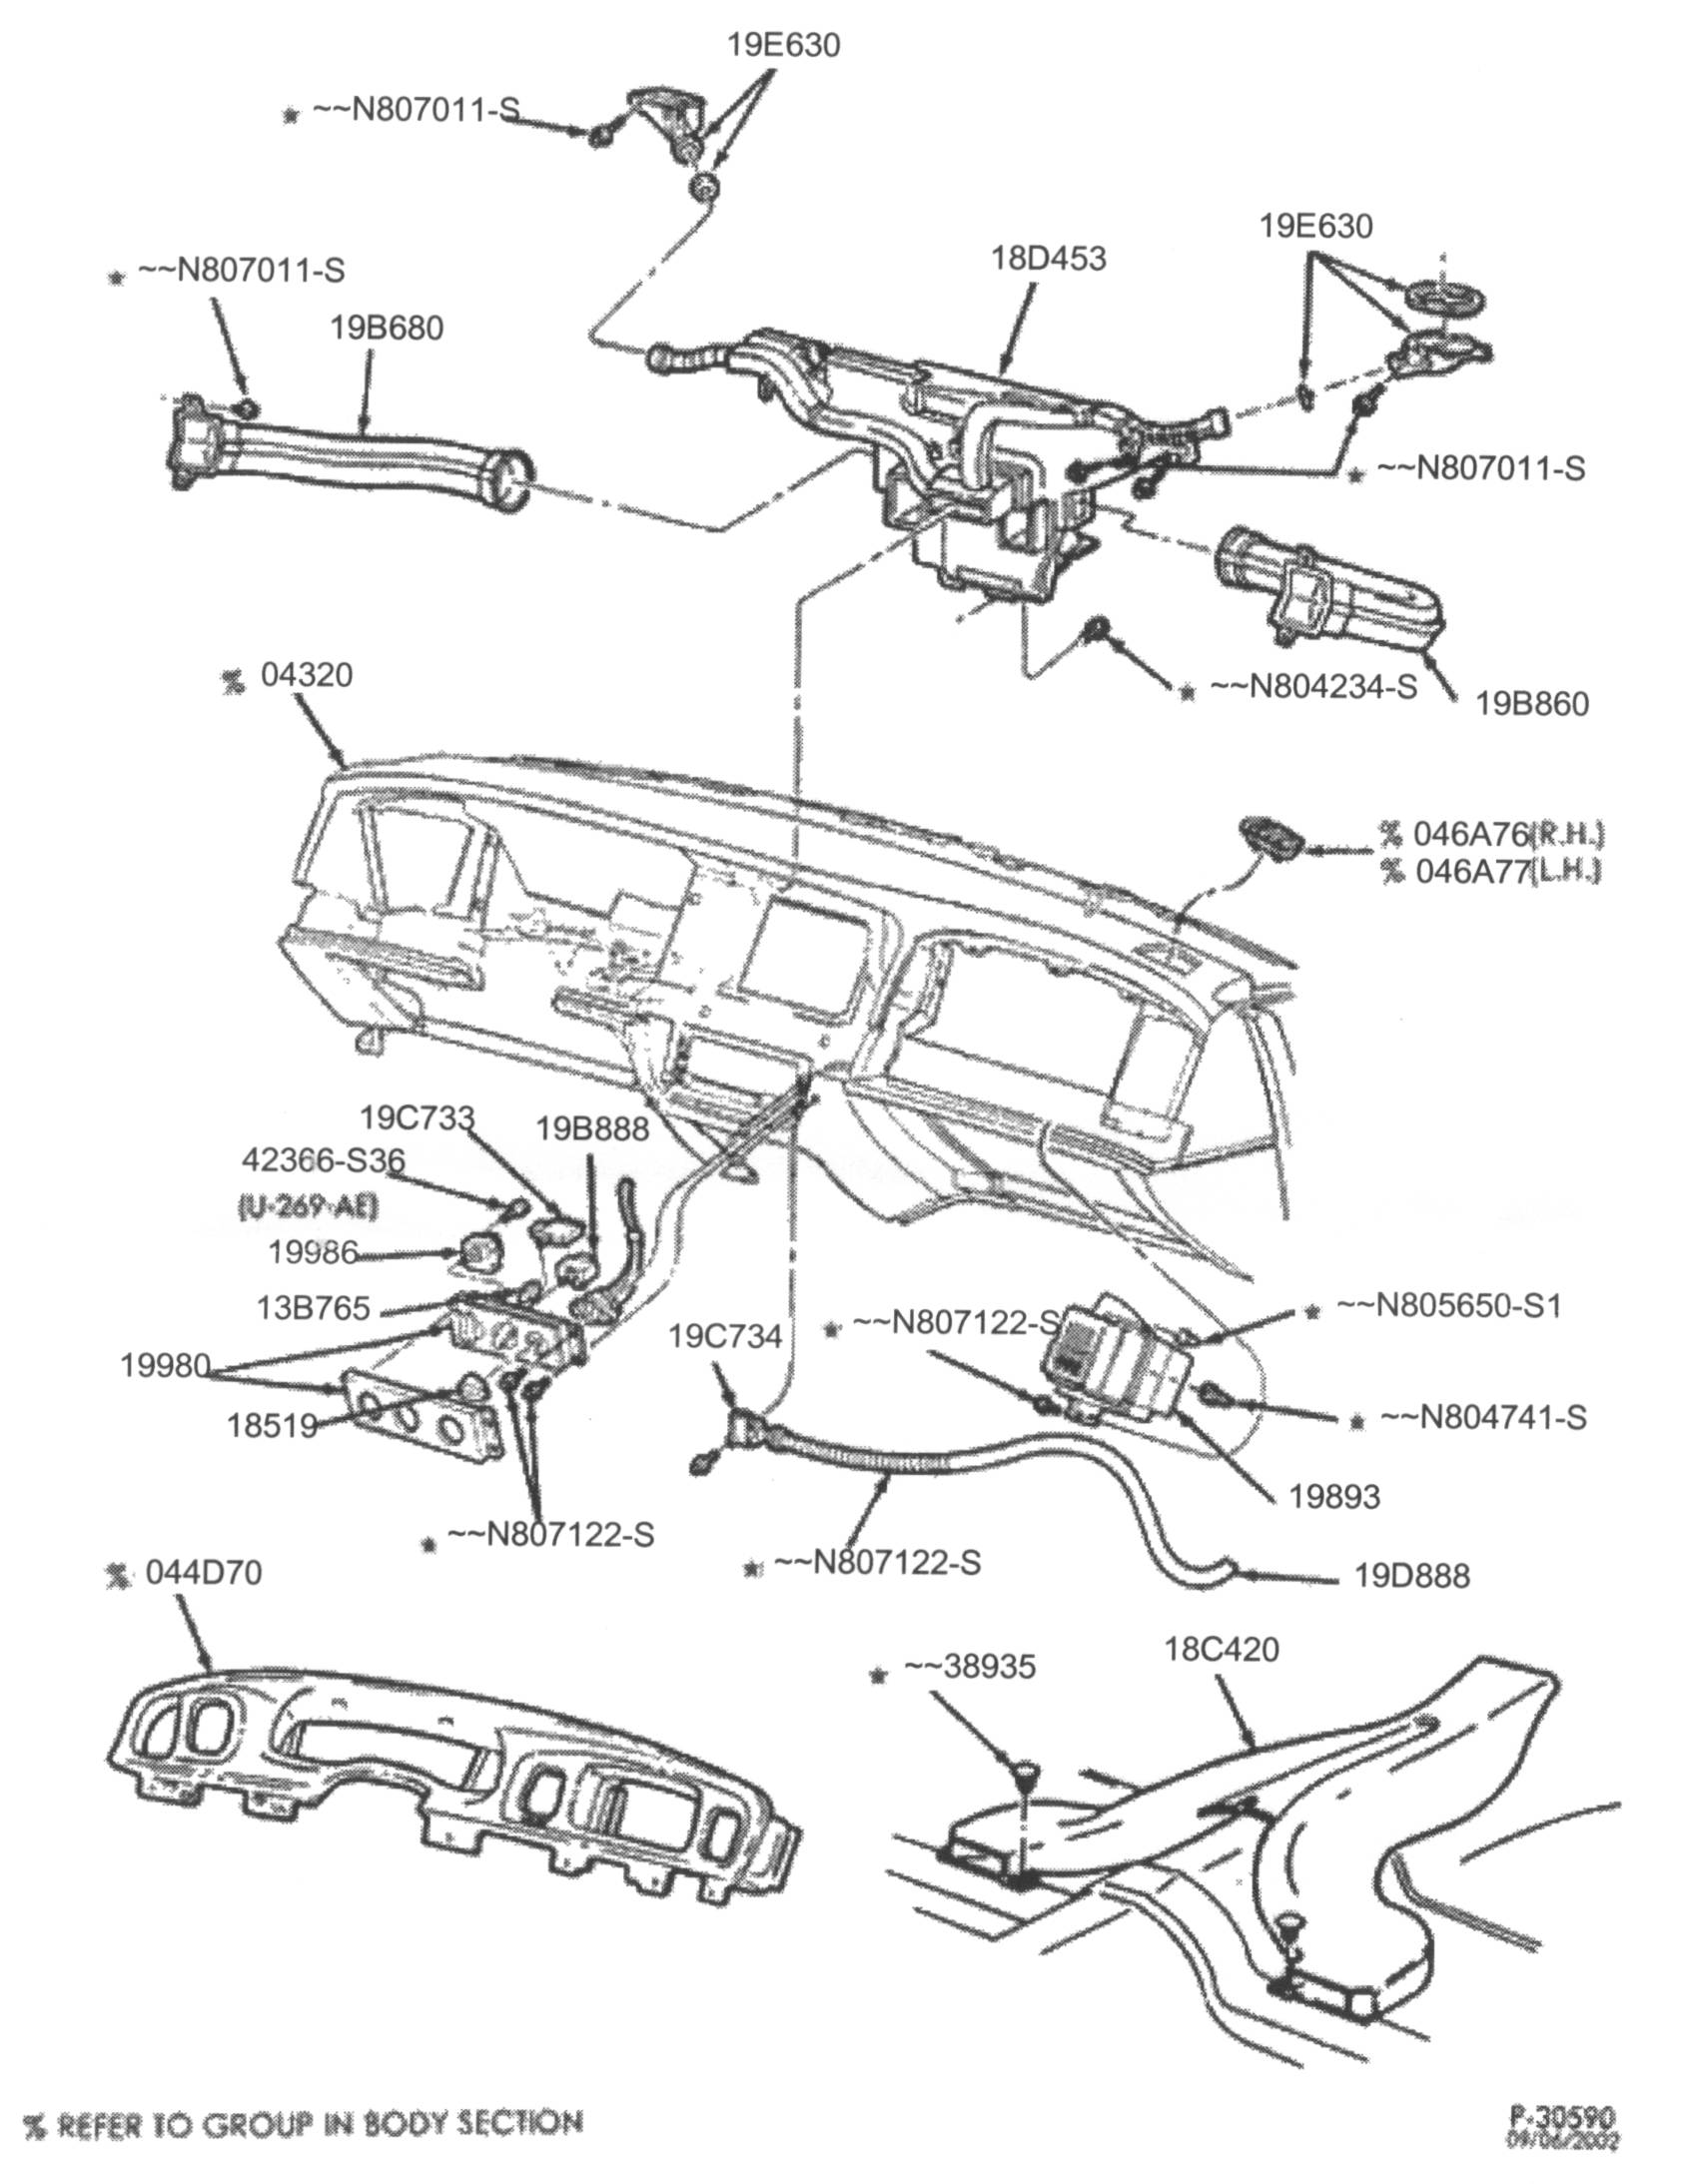 And here's the diagram that your local ford dealership would see if you were attempting to order parts for your crownvic's dashboard